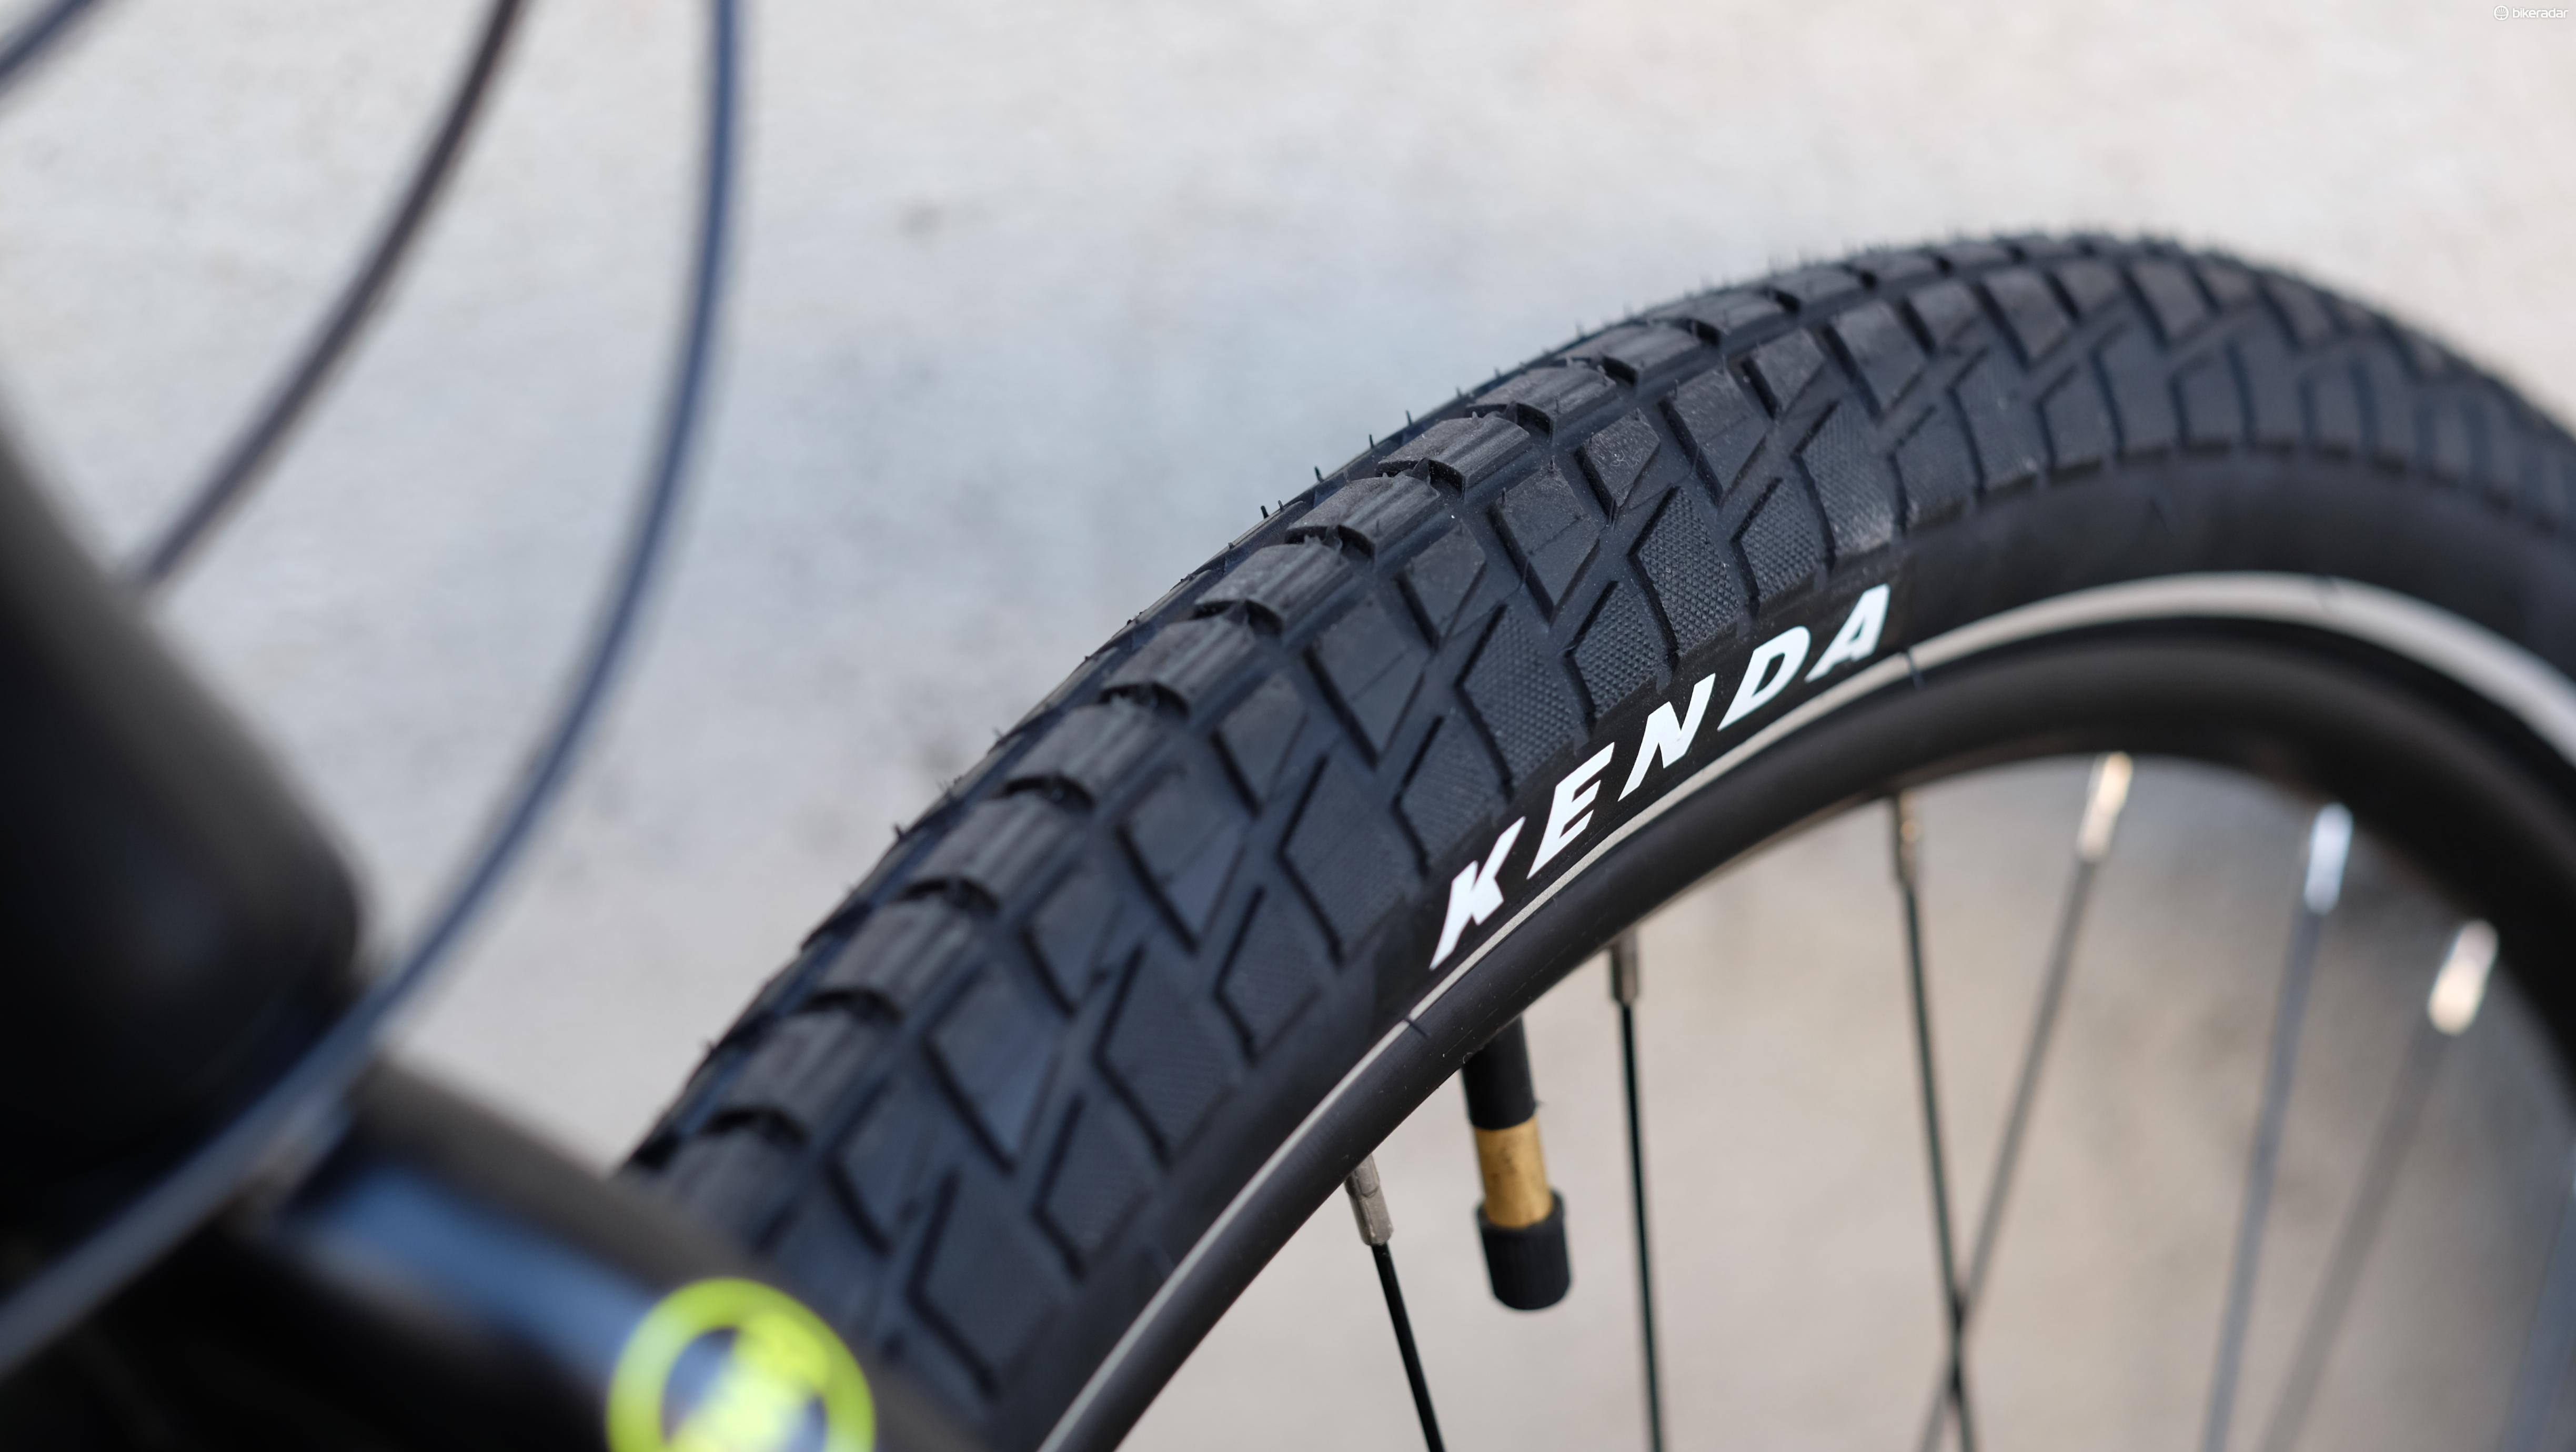 Branded tyres are great to see at this price, and the 1.95in width should go a long way to cushion the city streets